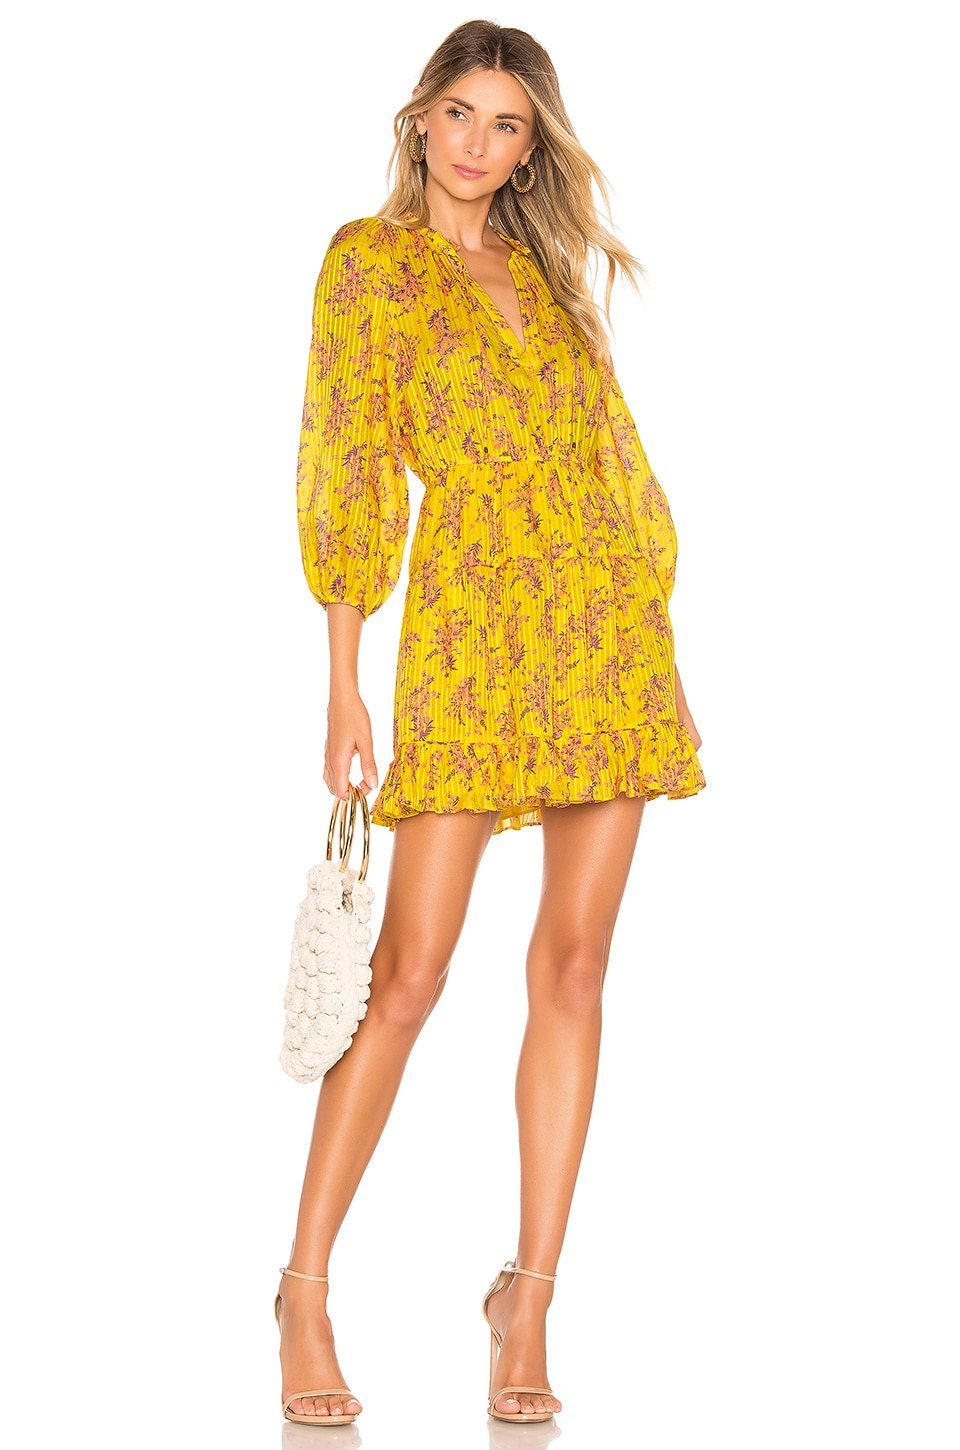 Ulla Johnson Brienne Dress in Chartreuse